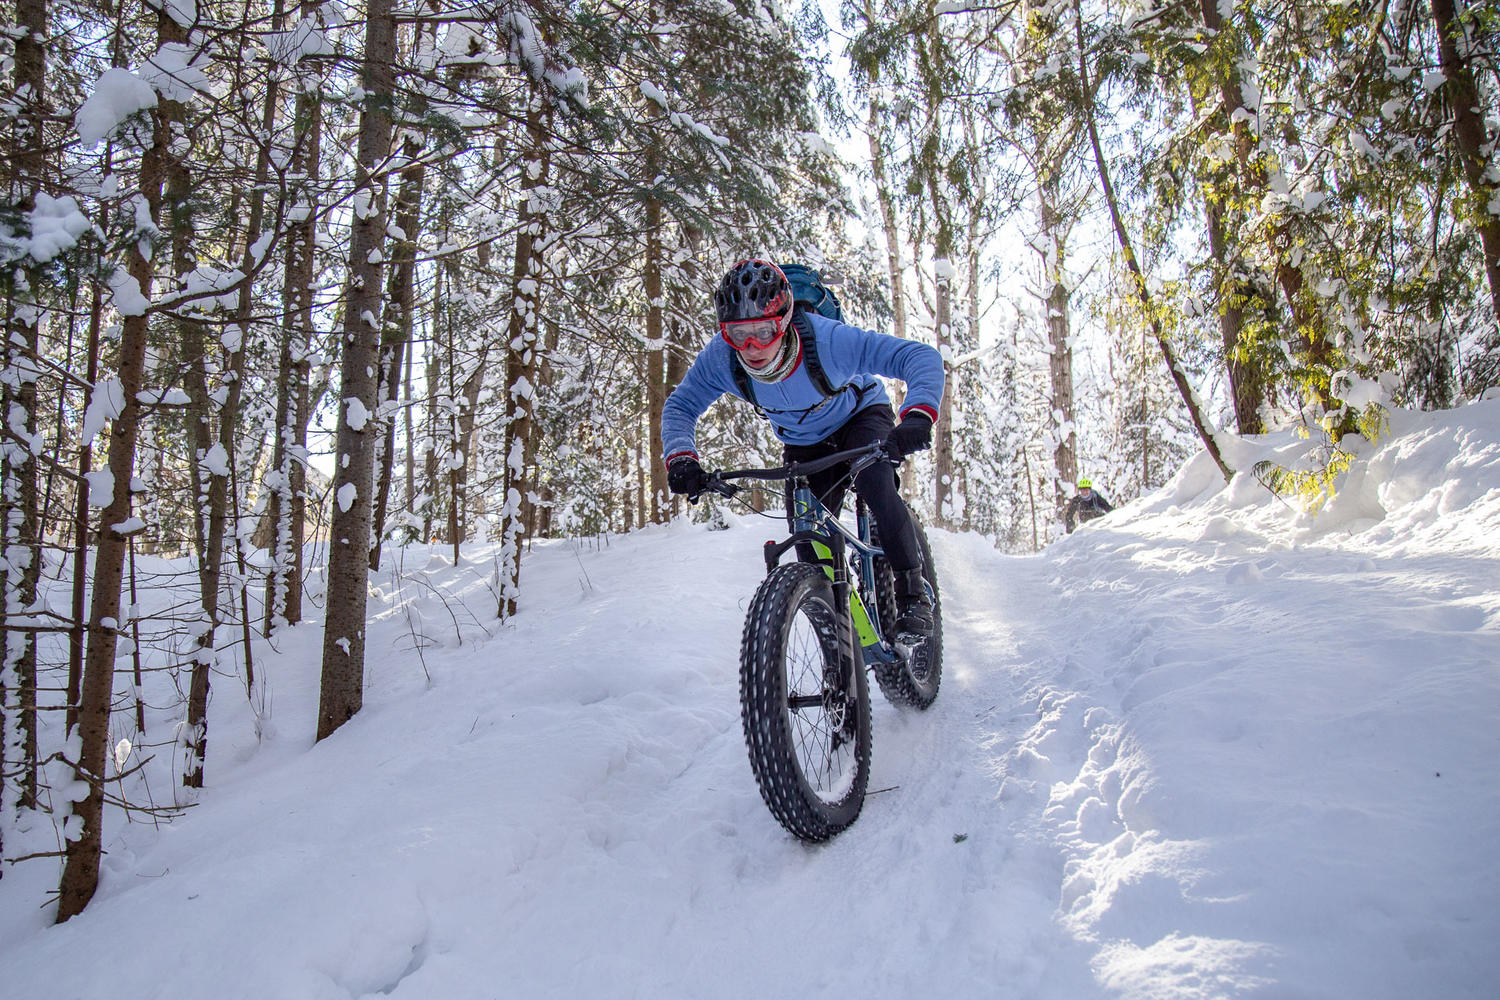 Man on fat tire bike cycling down a snow-covered hill in a forest.